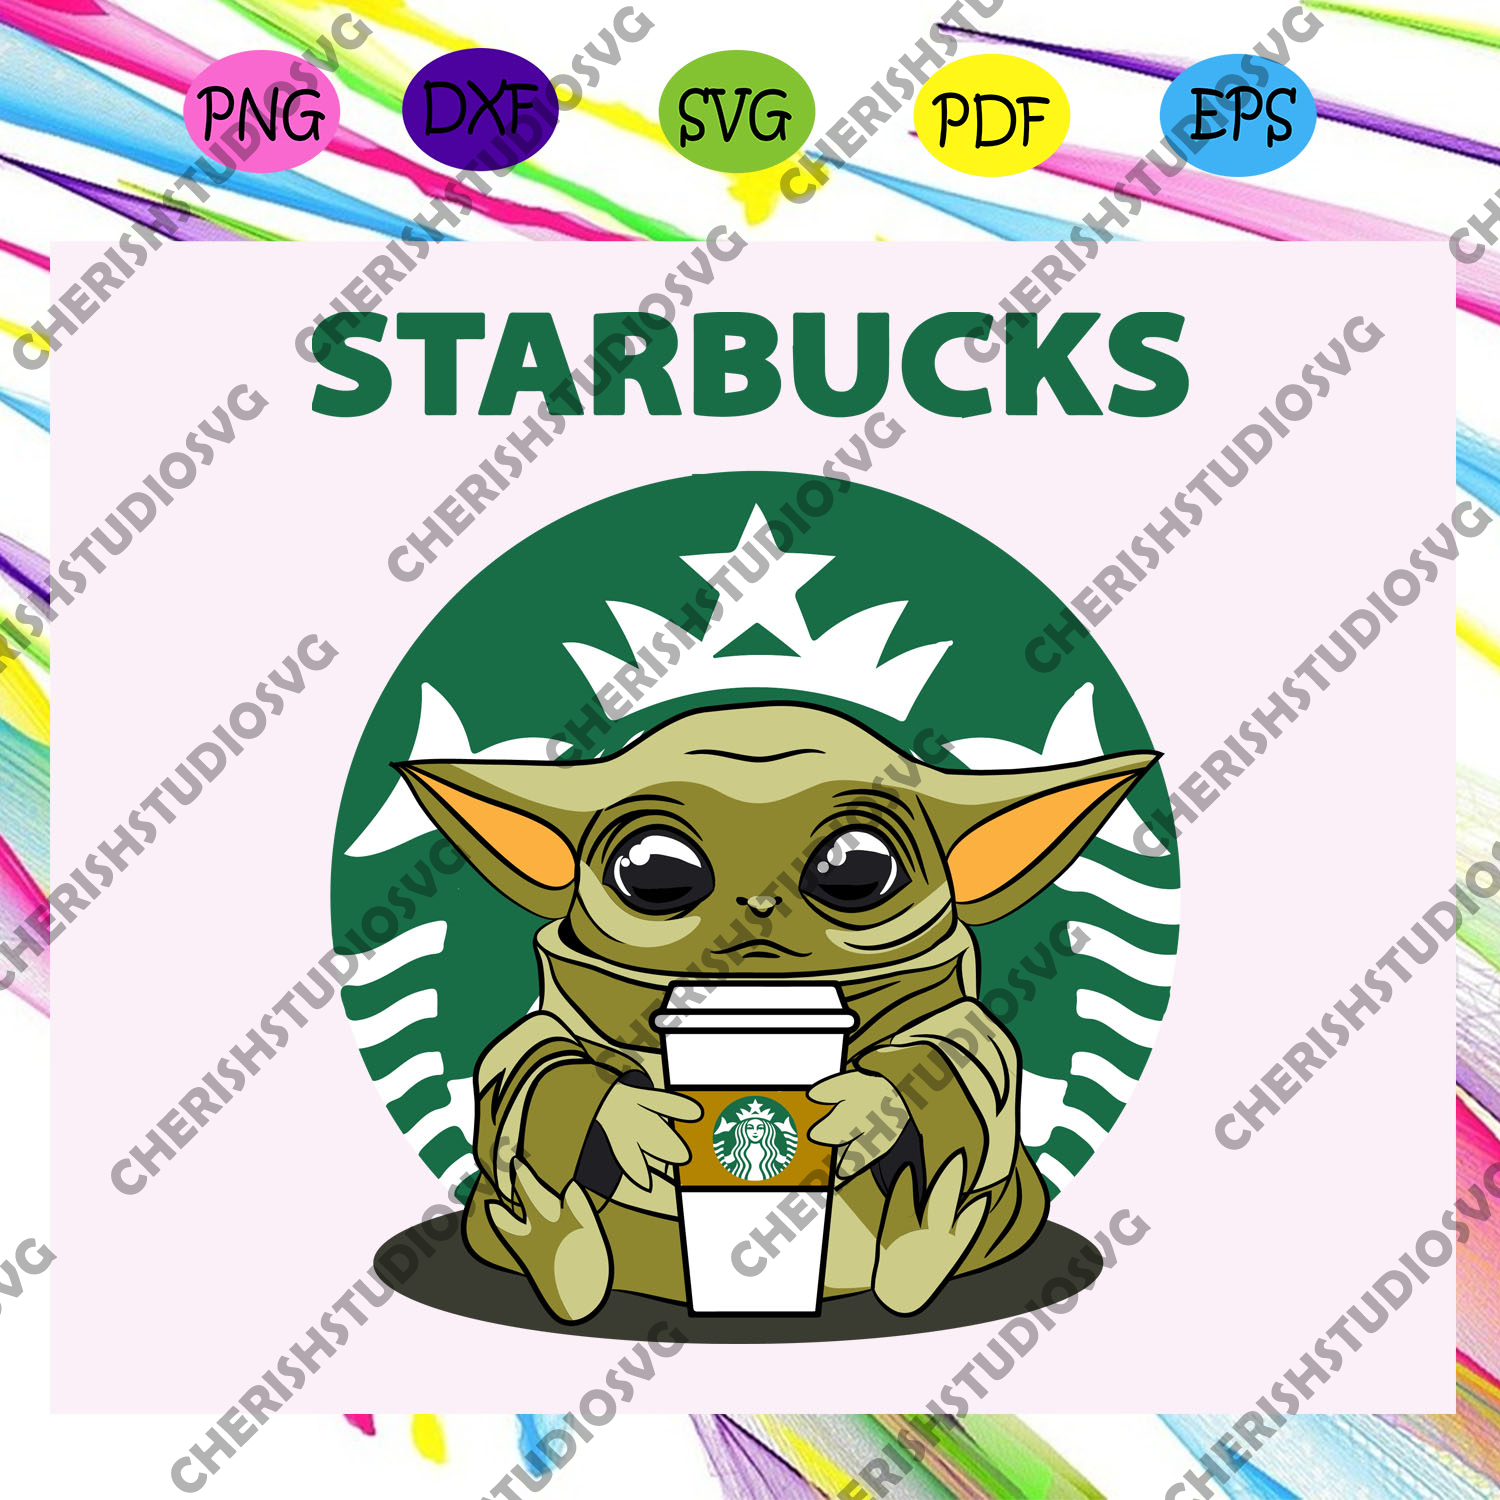 Baby yoda starbucks,baby yoda, yoda svg, clip art, yoda, baby yoda cricut, baby yoda silhouette, baby yoda sticker, baby yoda cut life, baby yoda shirt, For Silhouette, Files For Cricut, SVG, DXF, EPS, PNG Instant Download